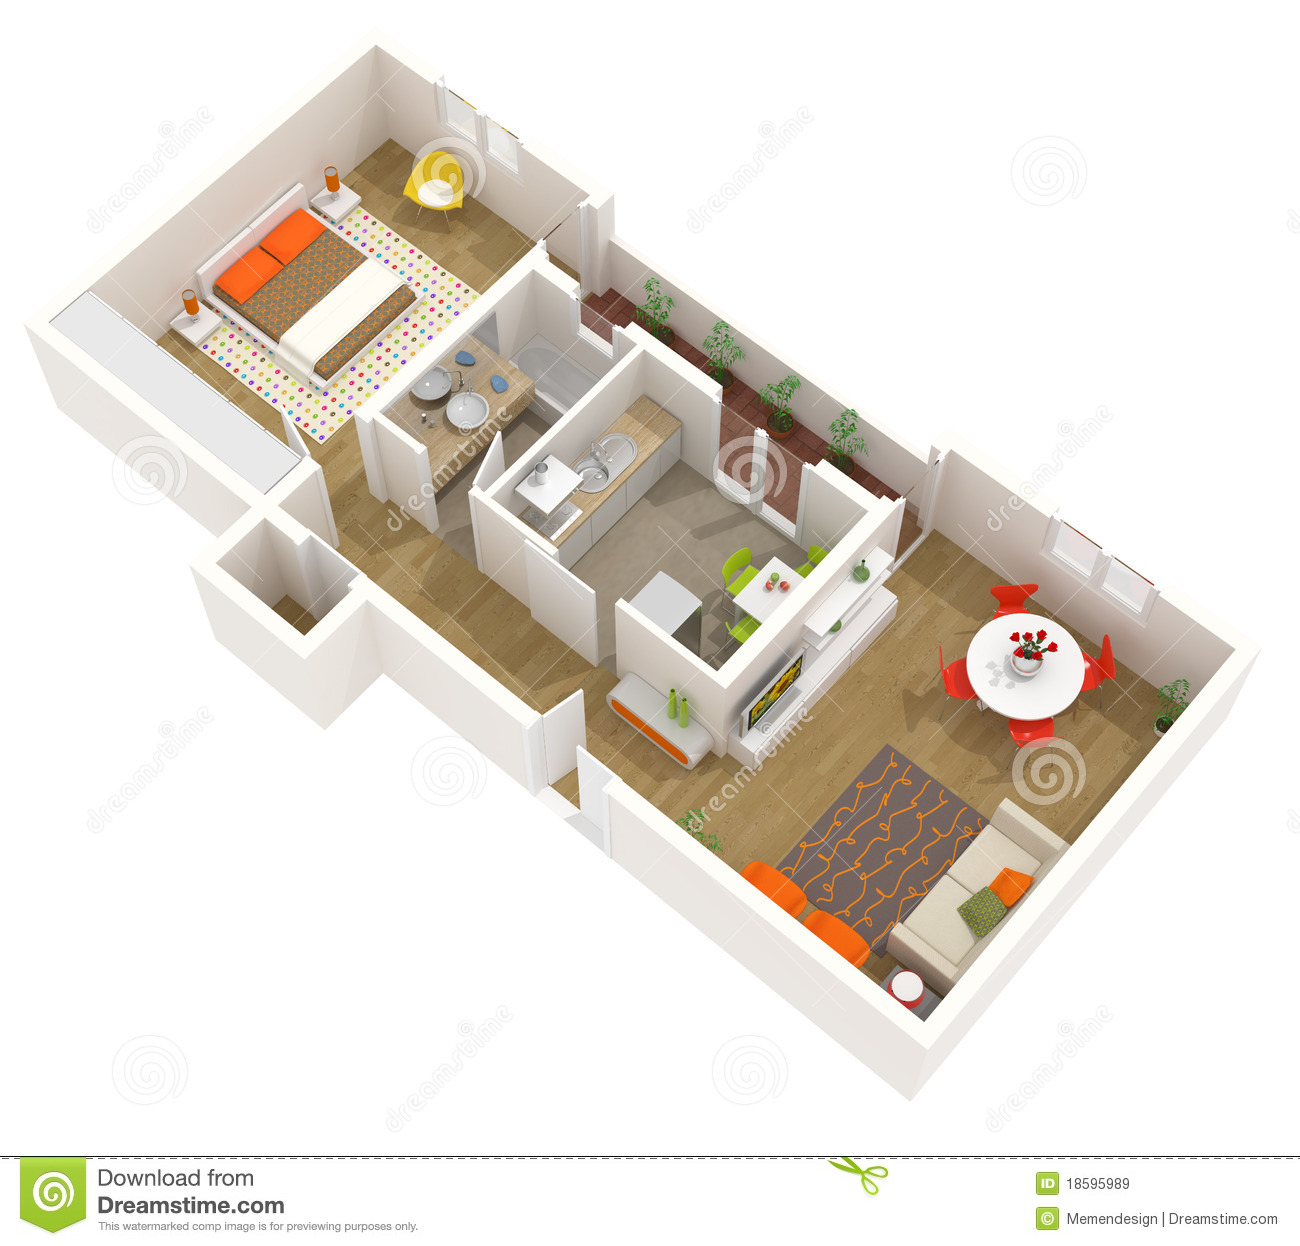 Http Www Dreamstime Com Royalty Free Stock Images Apartment Interior Design 3d Floor Plan Image18595989